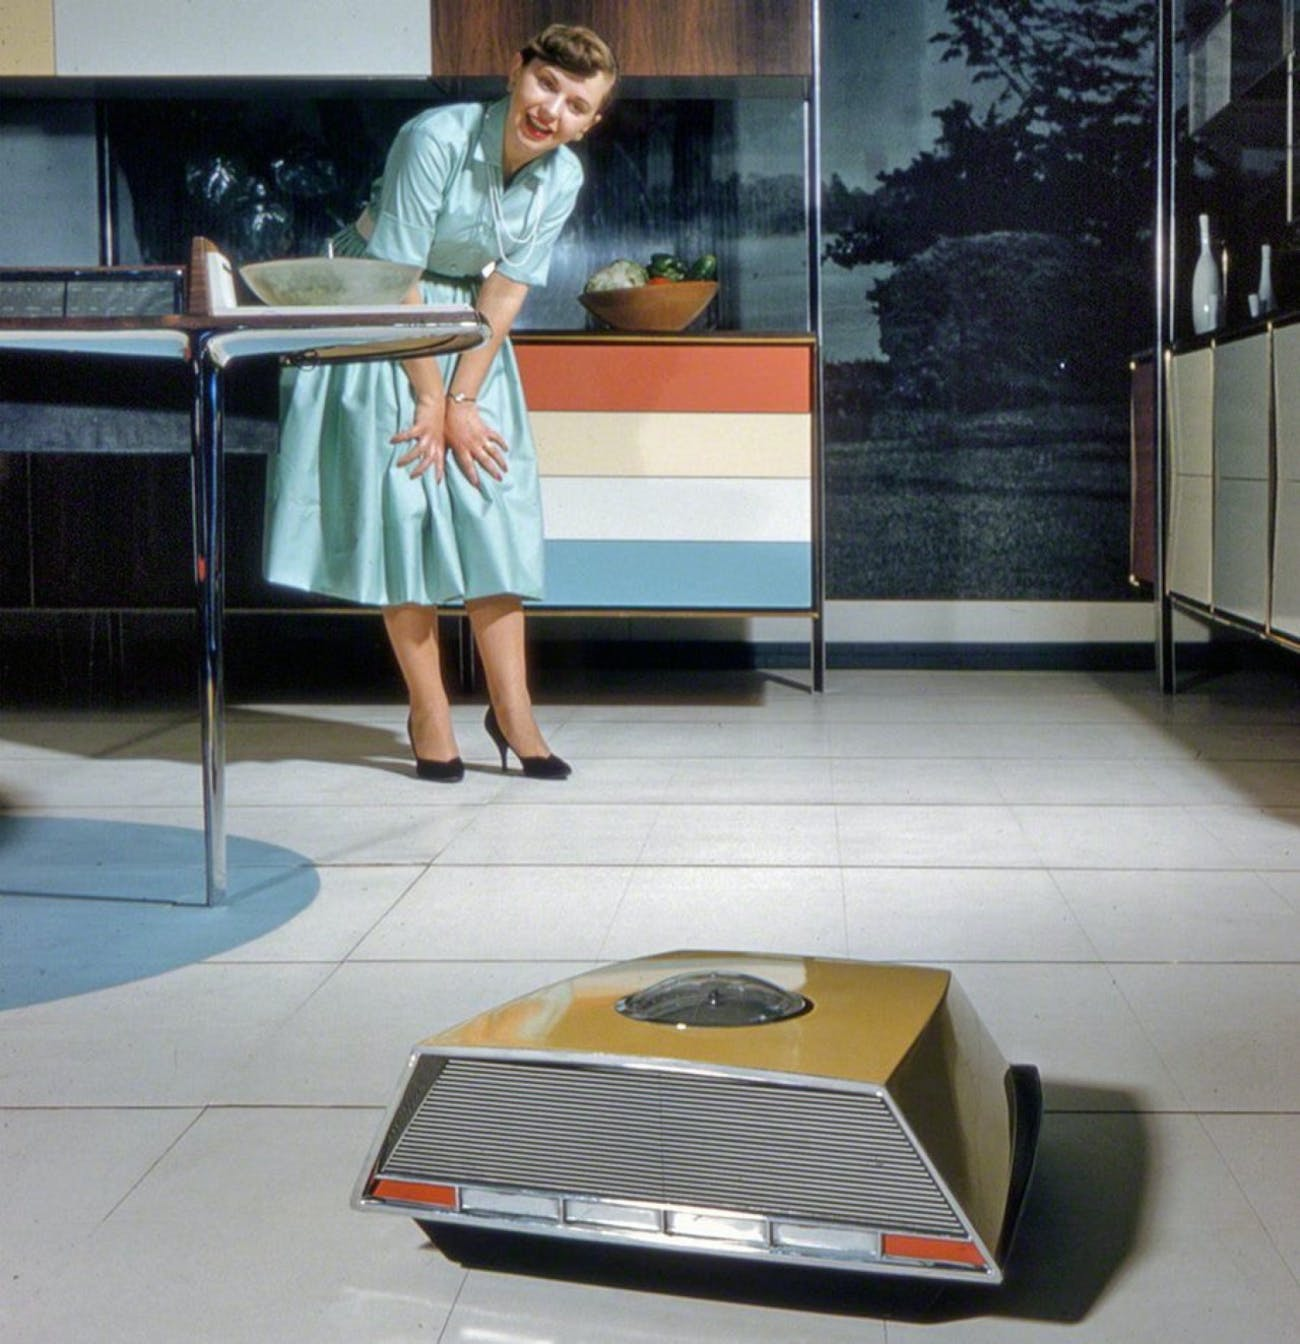 Kitchen Of The Future: We've Finally Arrived In The 1950s Kitchen Of The Future